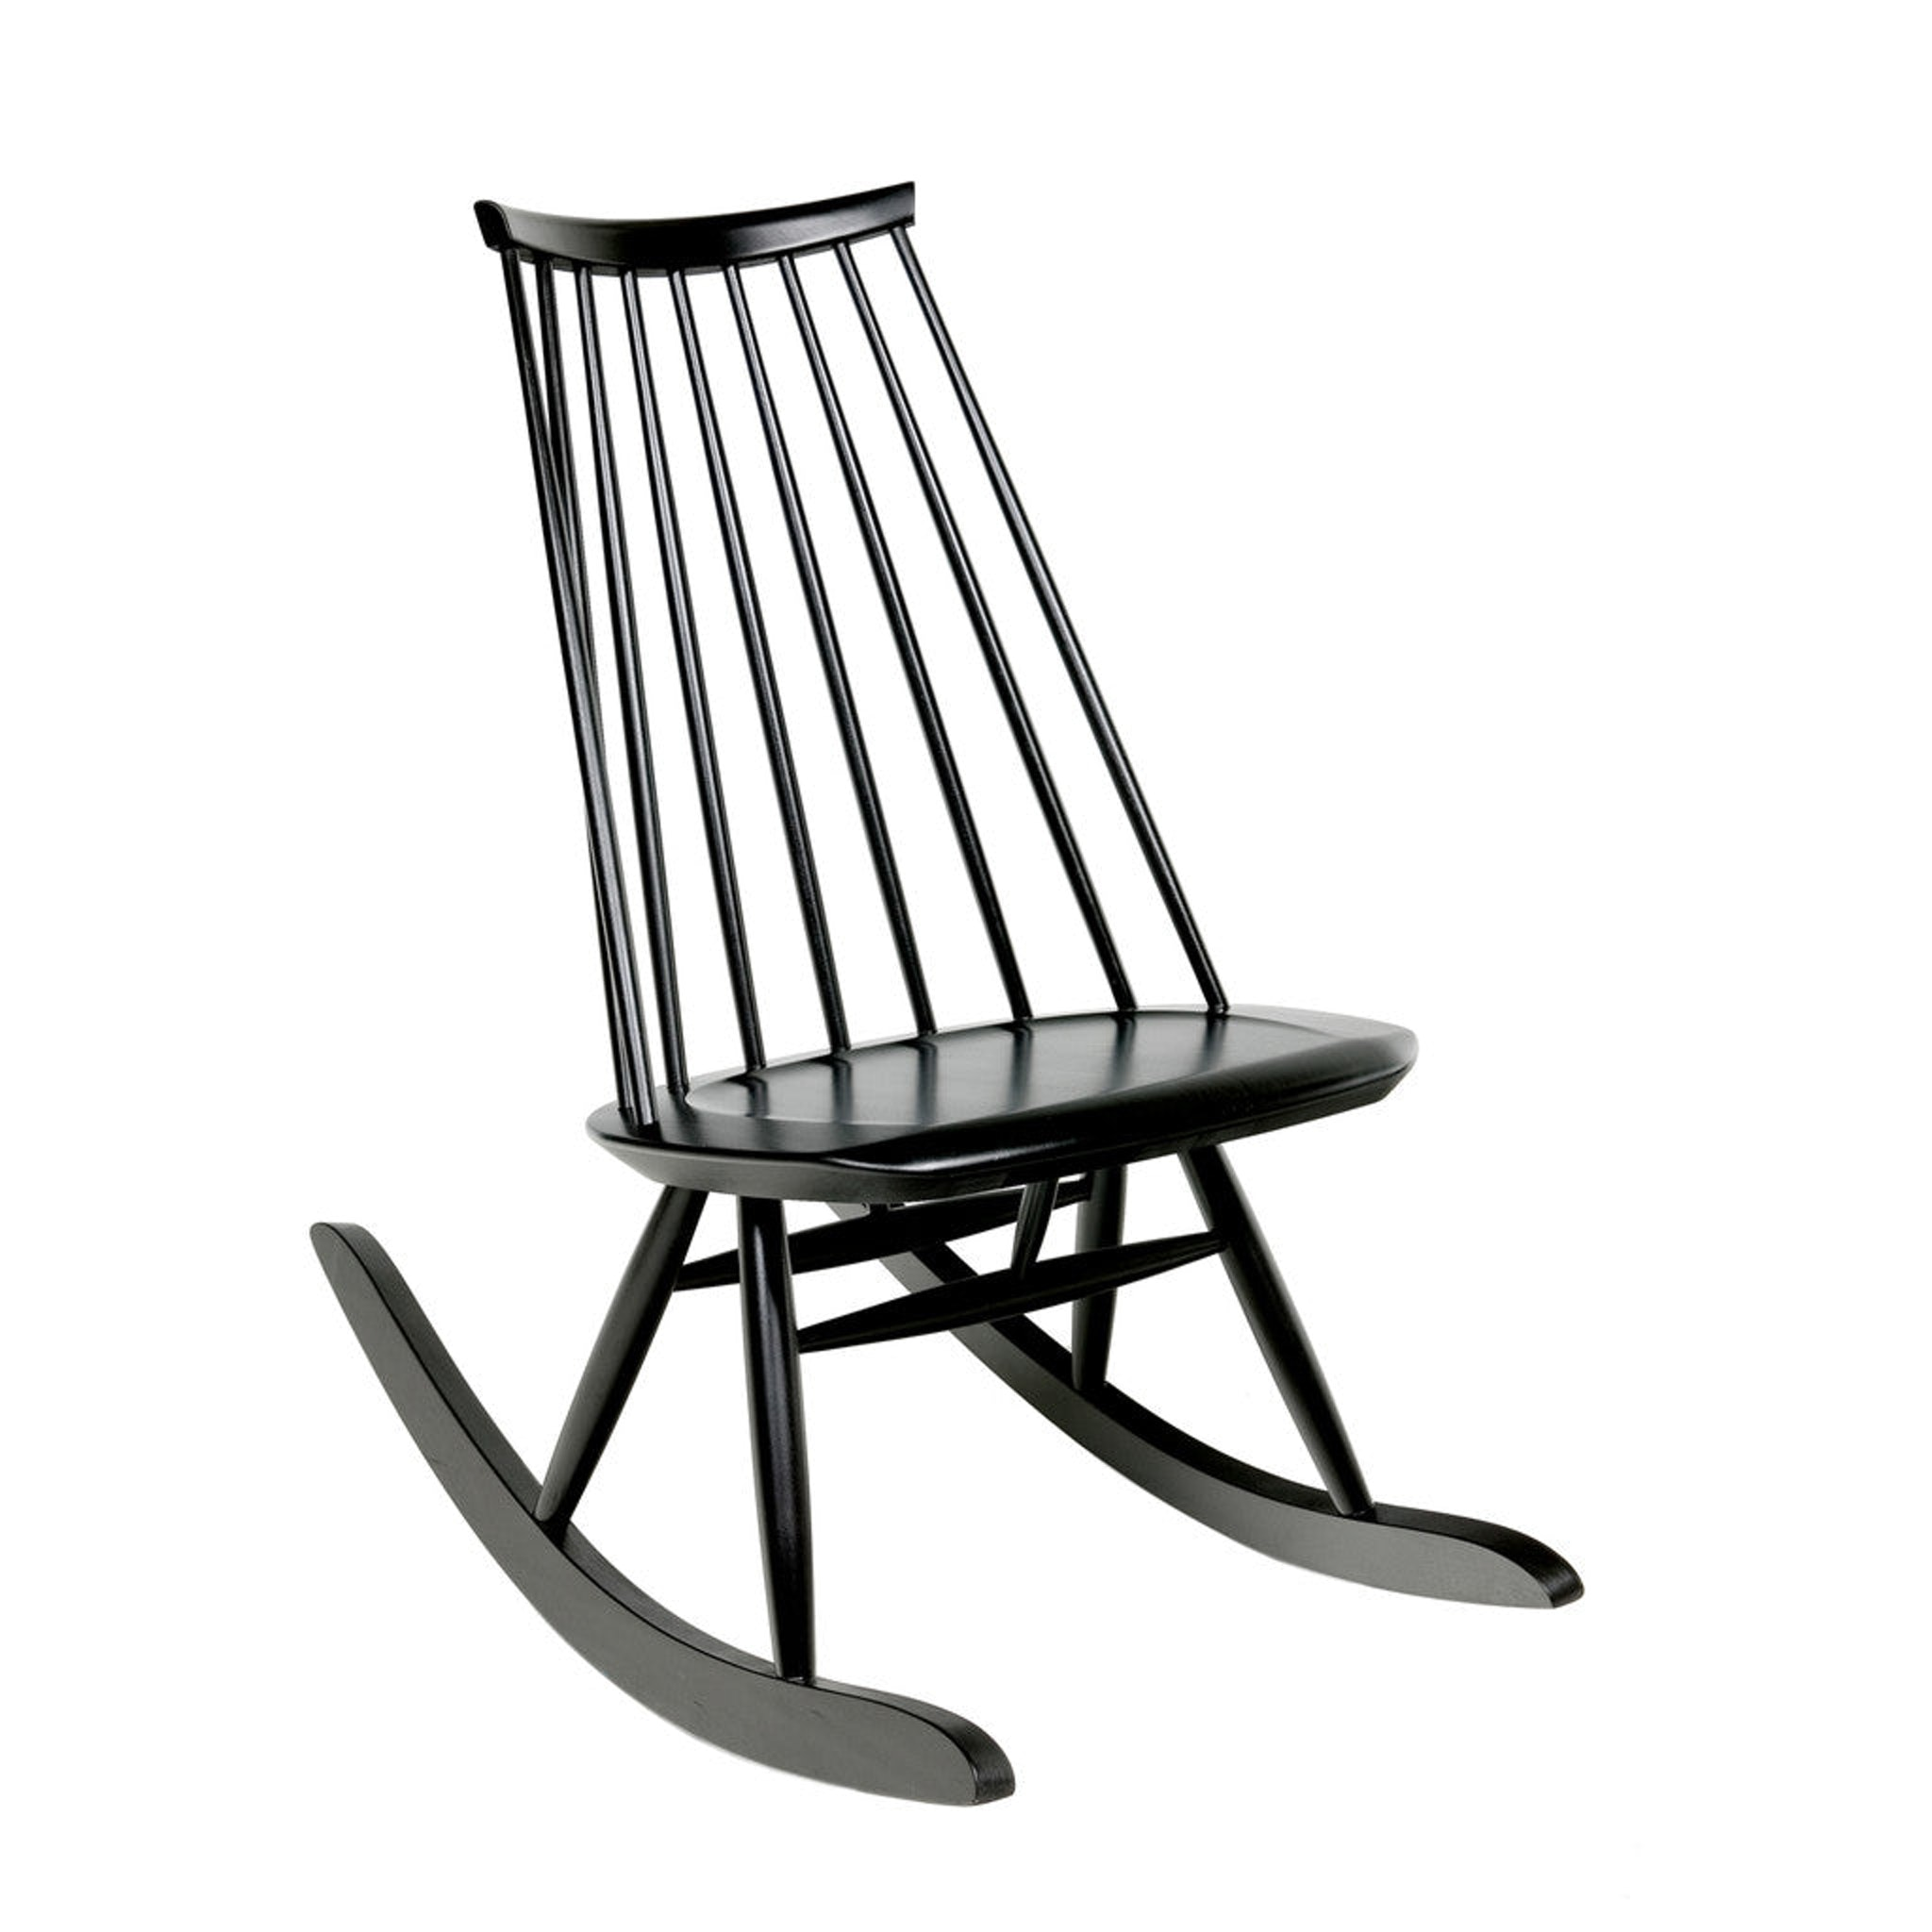 Mademoiselle Rocking Chair by Artek